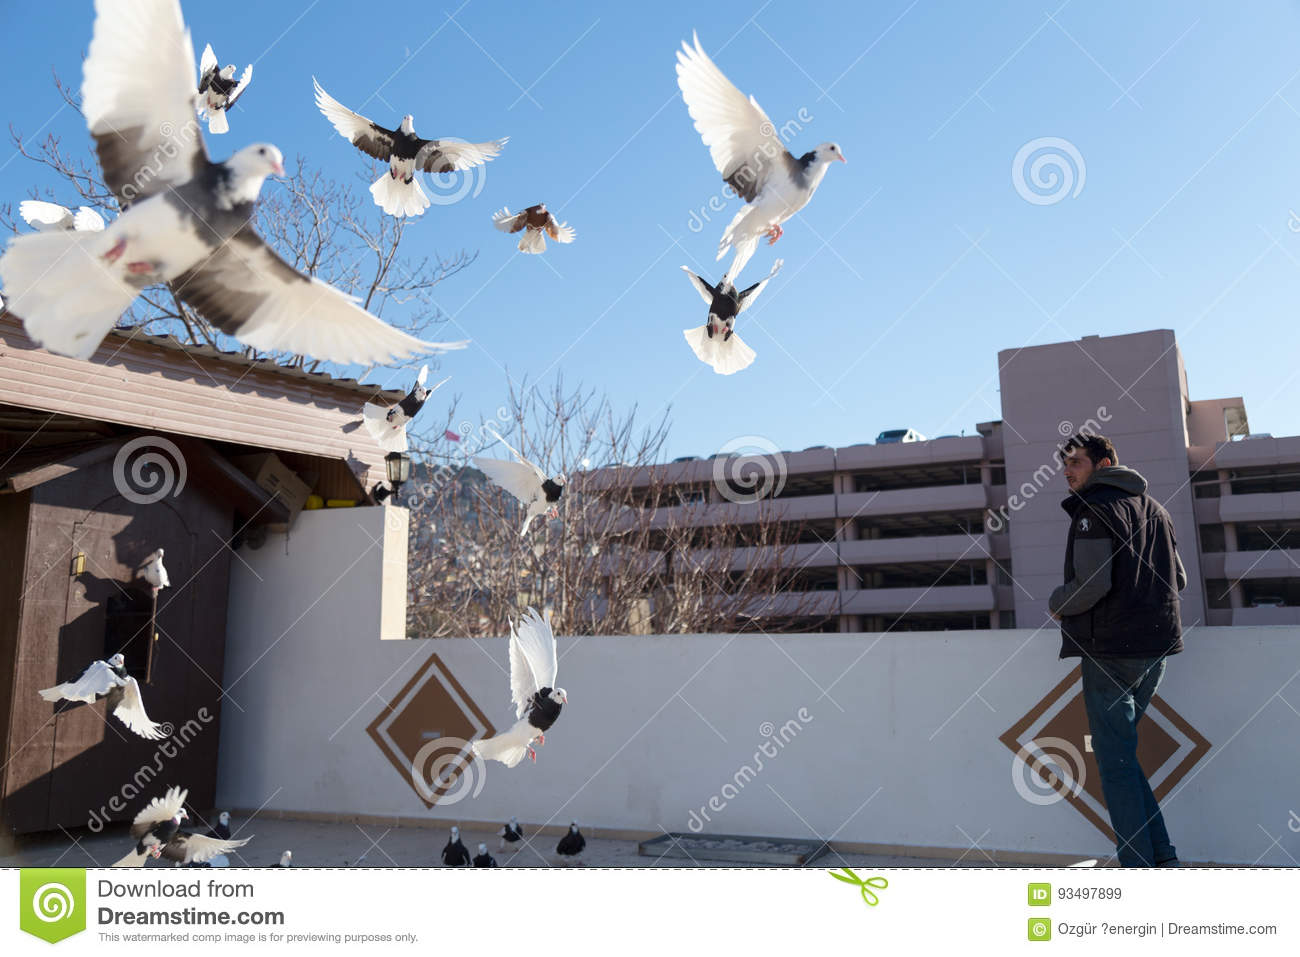 Pigeons flying outside their coops. Pigeon breeders are watching them.